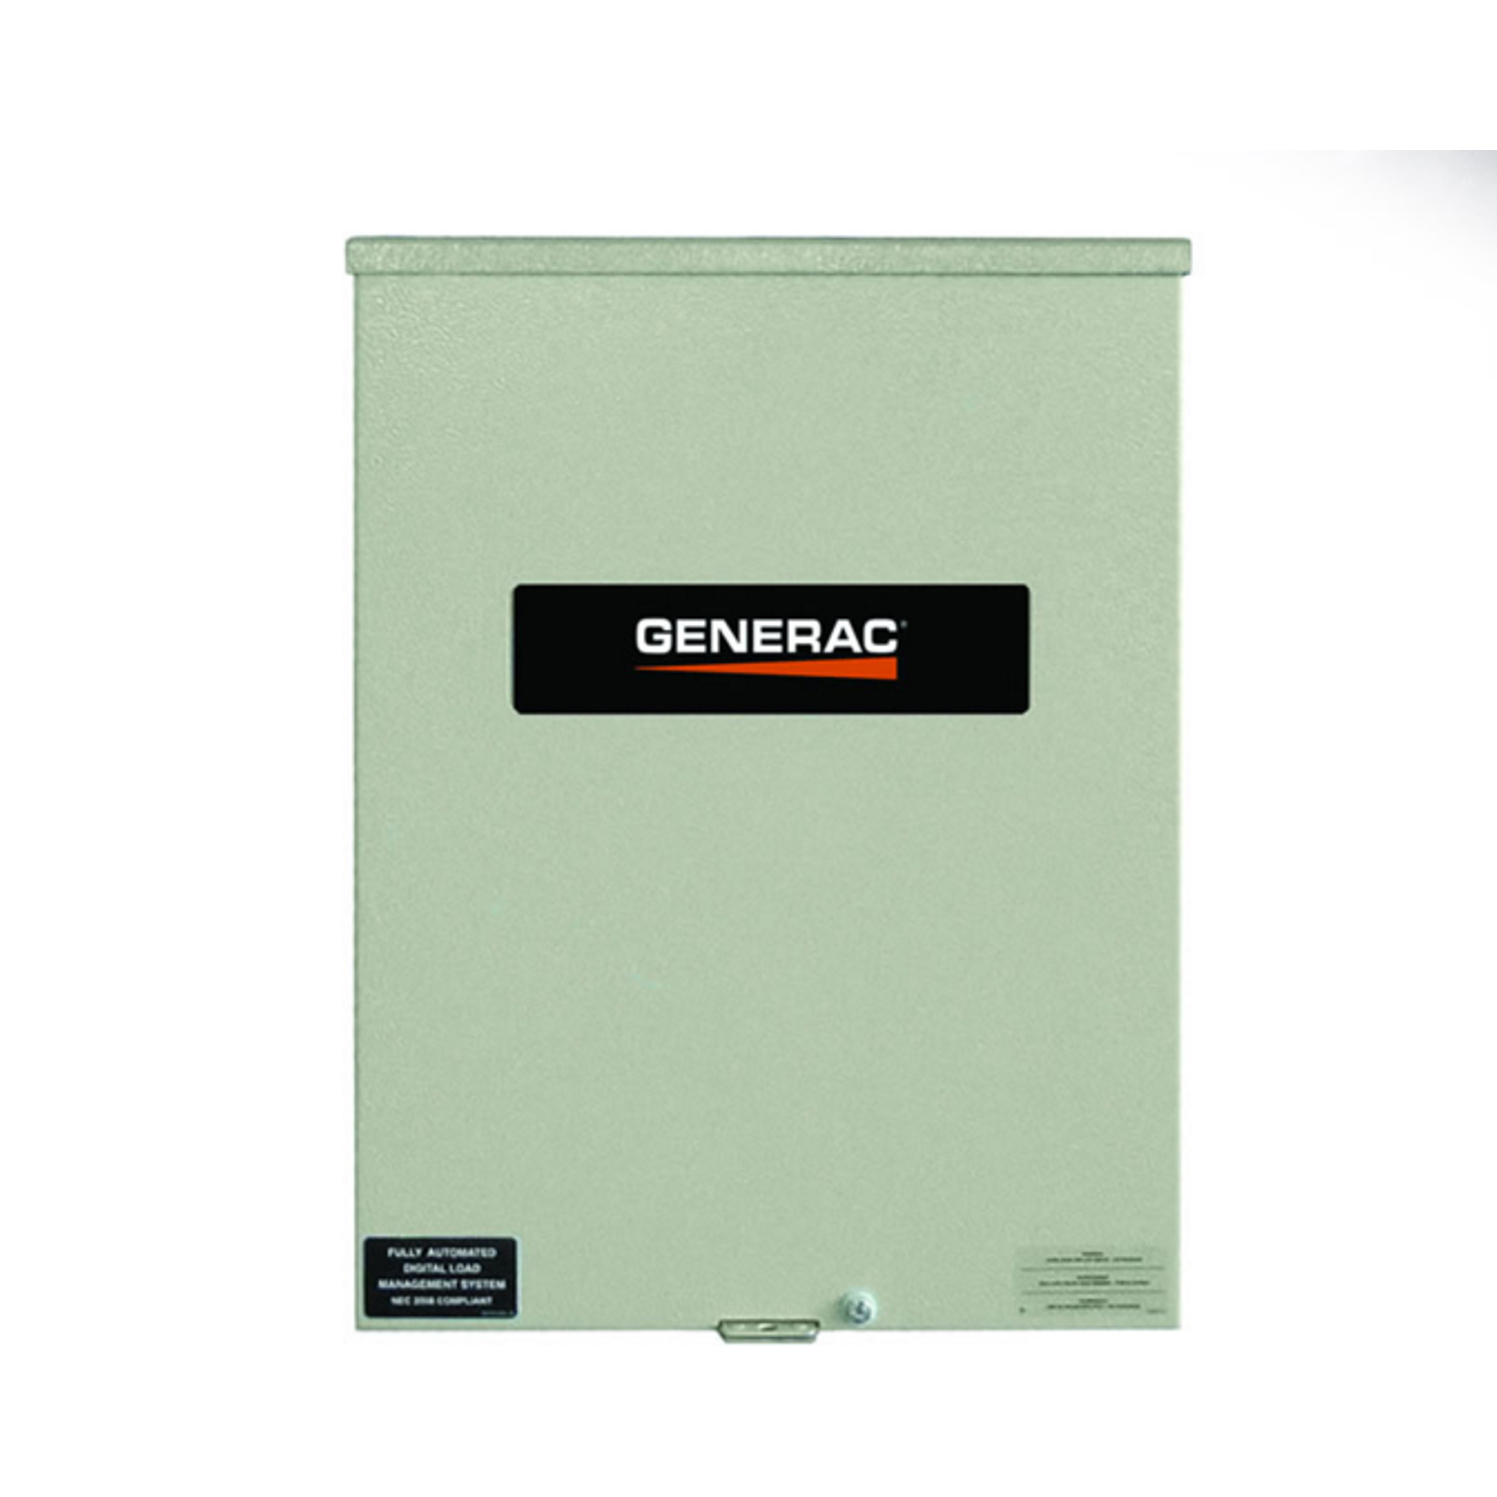 Generac Transfer Switch RTSW400A3